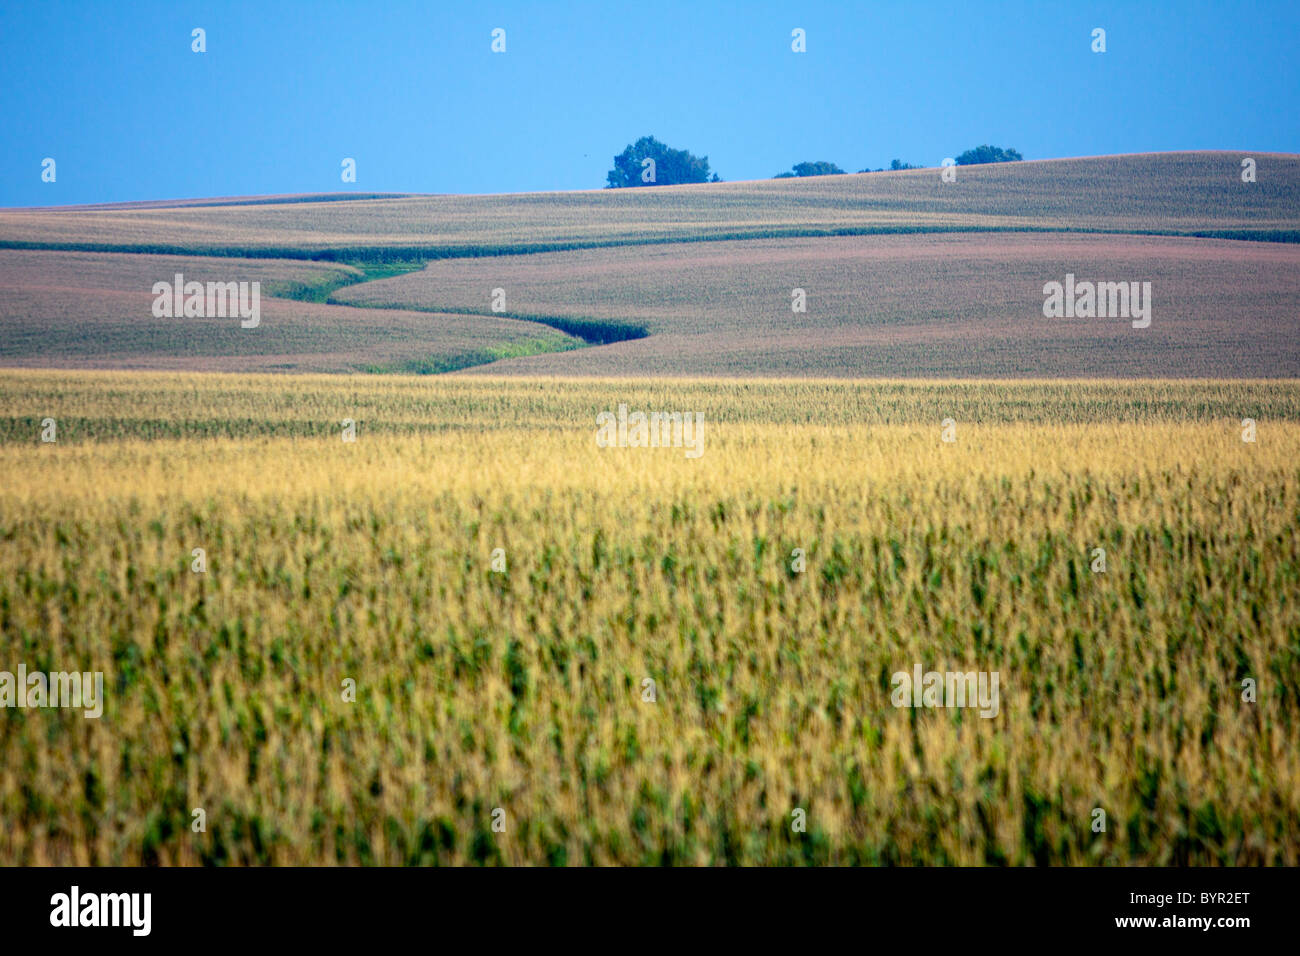 A summer corn field on the rolling plains of Central Illinois. - Stock Image